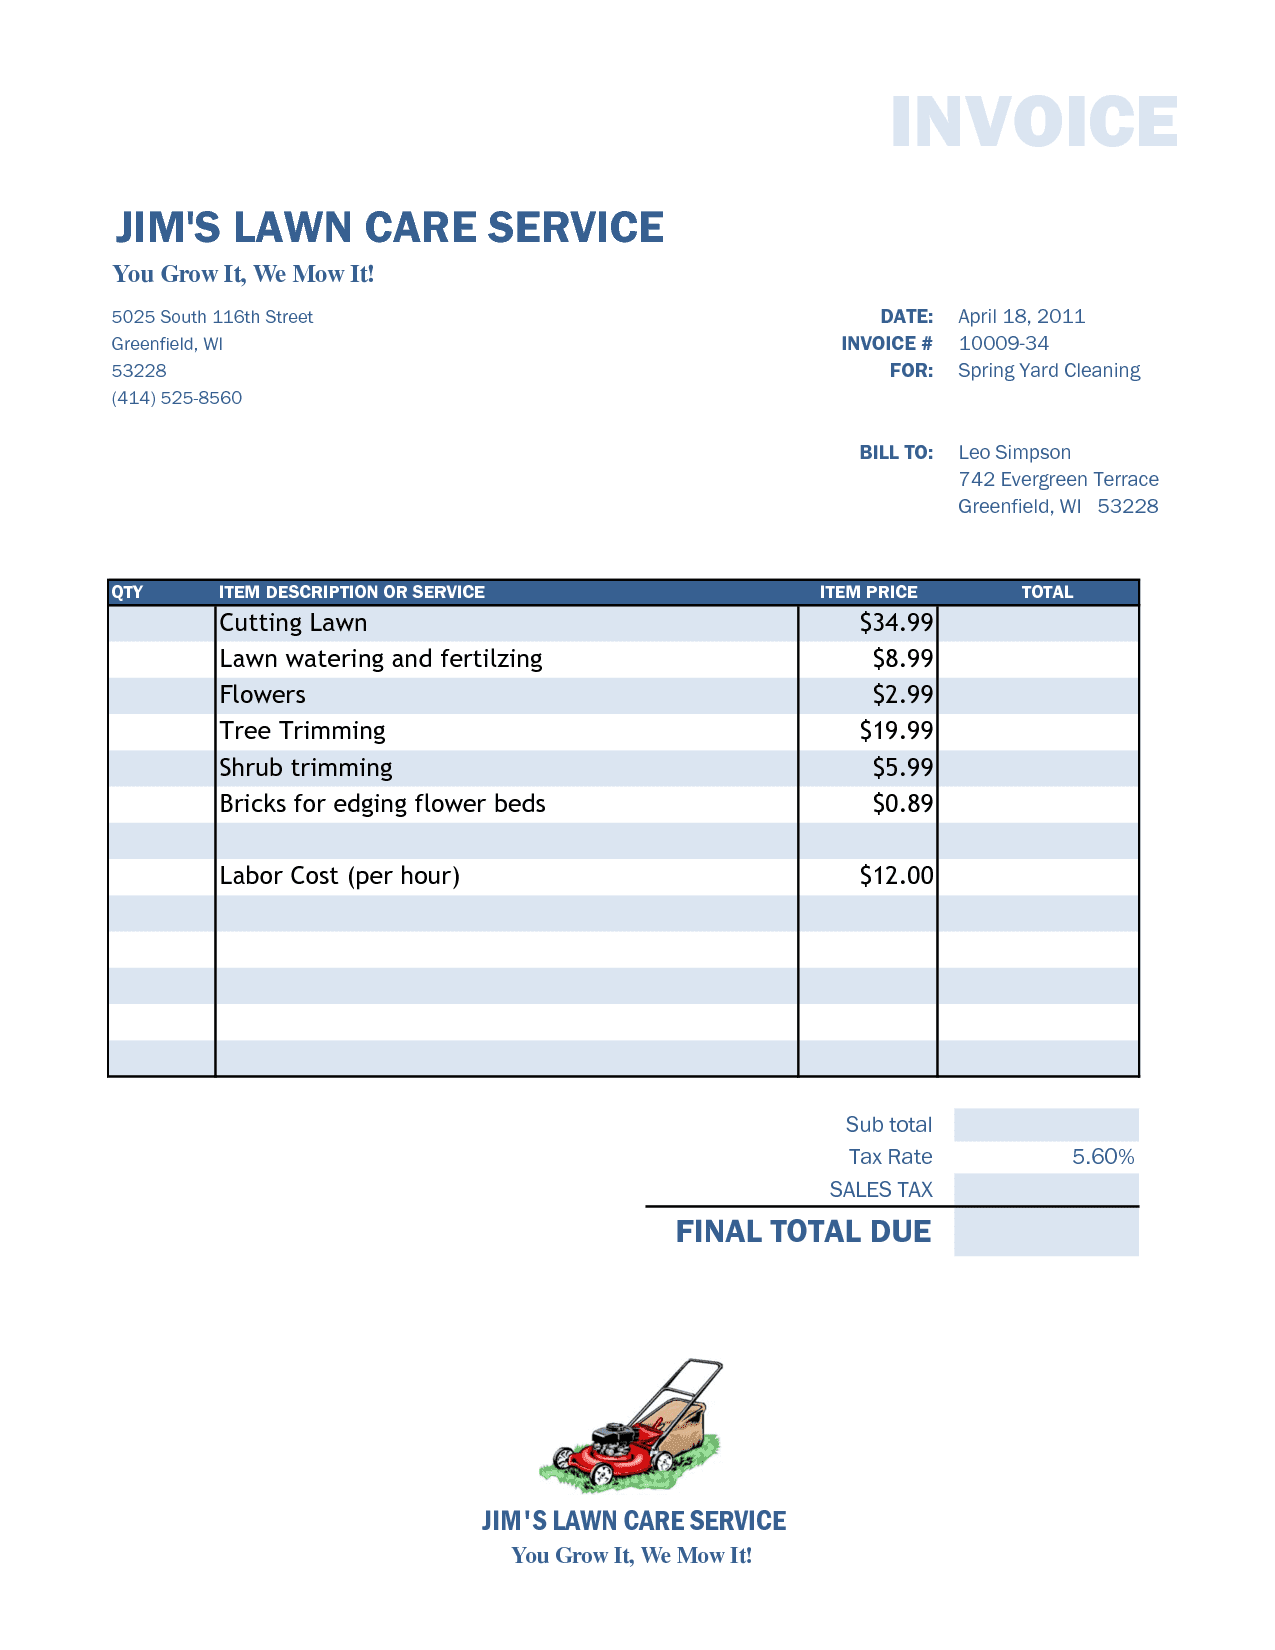 Lawn Care Invoice Template Pdf Lawn Care Invoice Template Spreadsheet Templates for Busines Spreadsheet Templates for Busines Lawn Care Invoice Examples